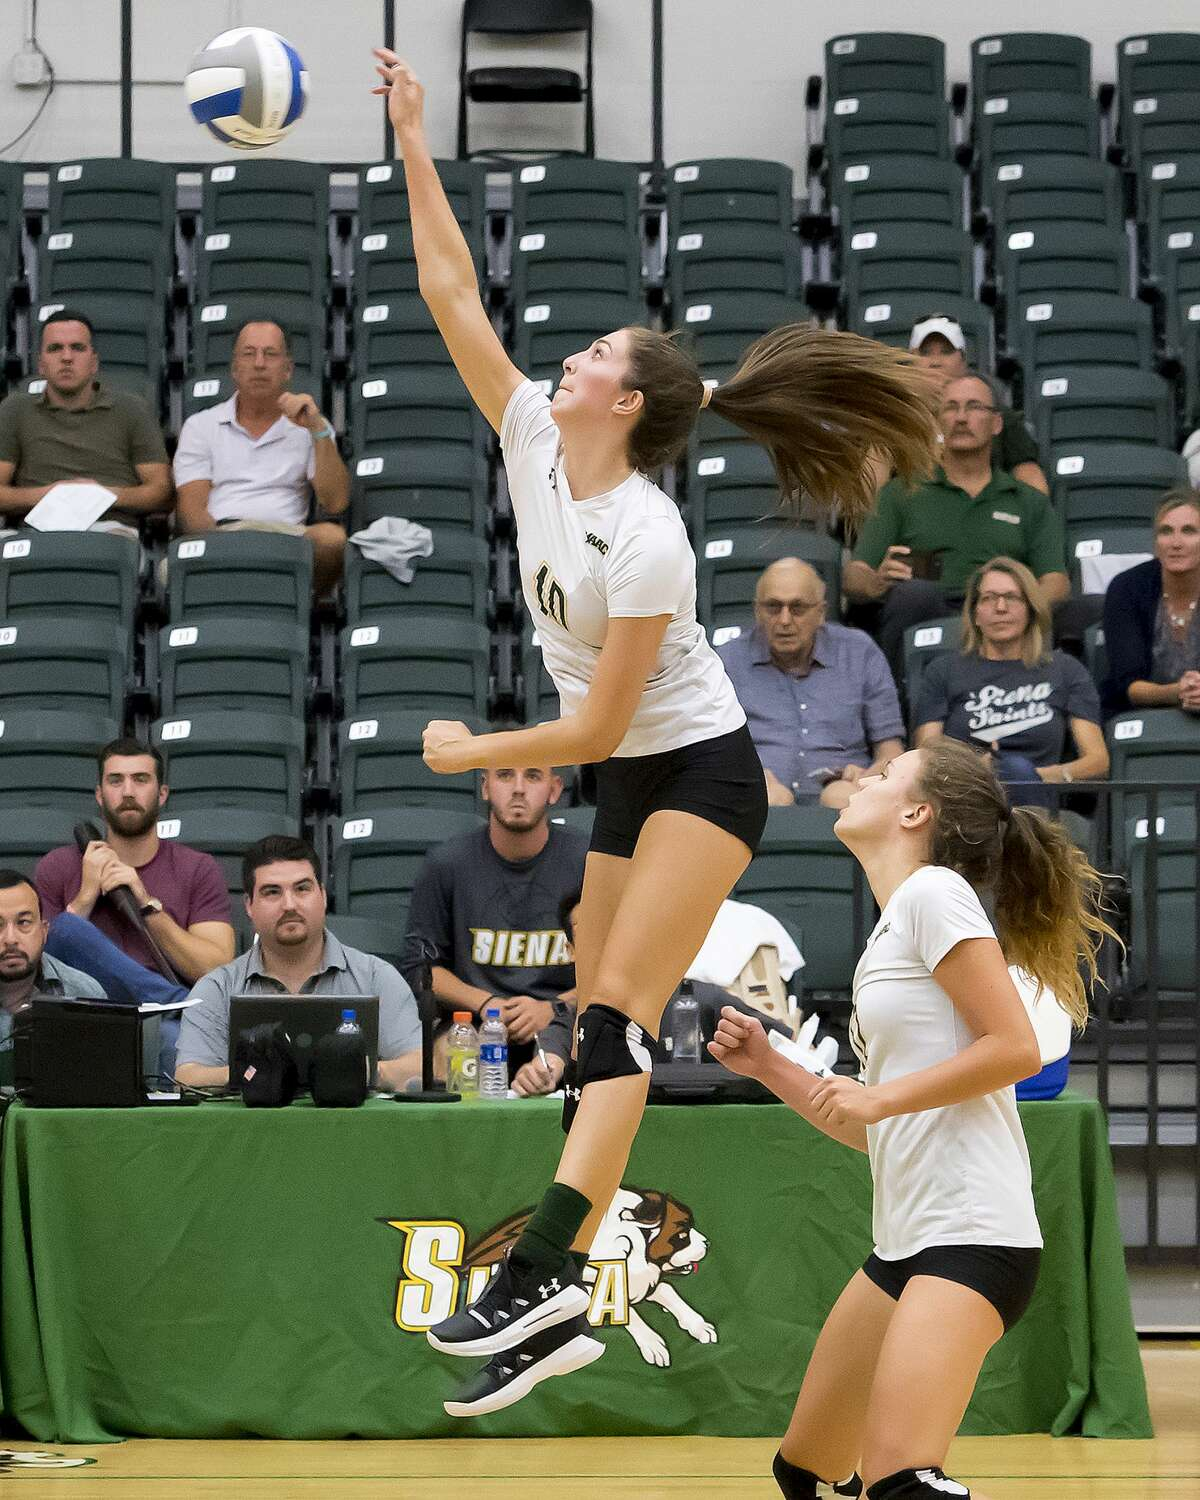 Siena volleyball player Abby Huffman has decided to remain in California and take classes remotely this fall. (Courtesy of Siena College Athletics)